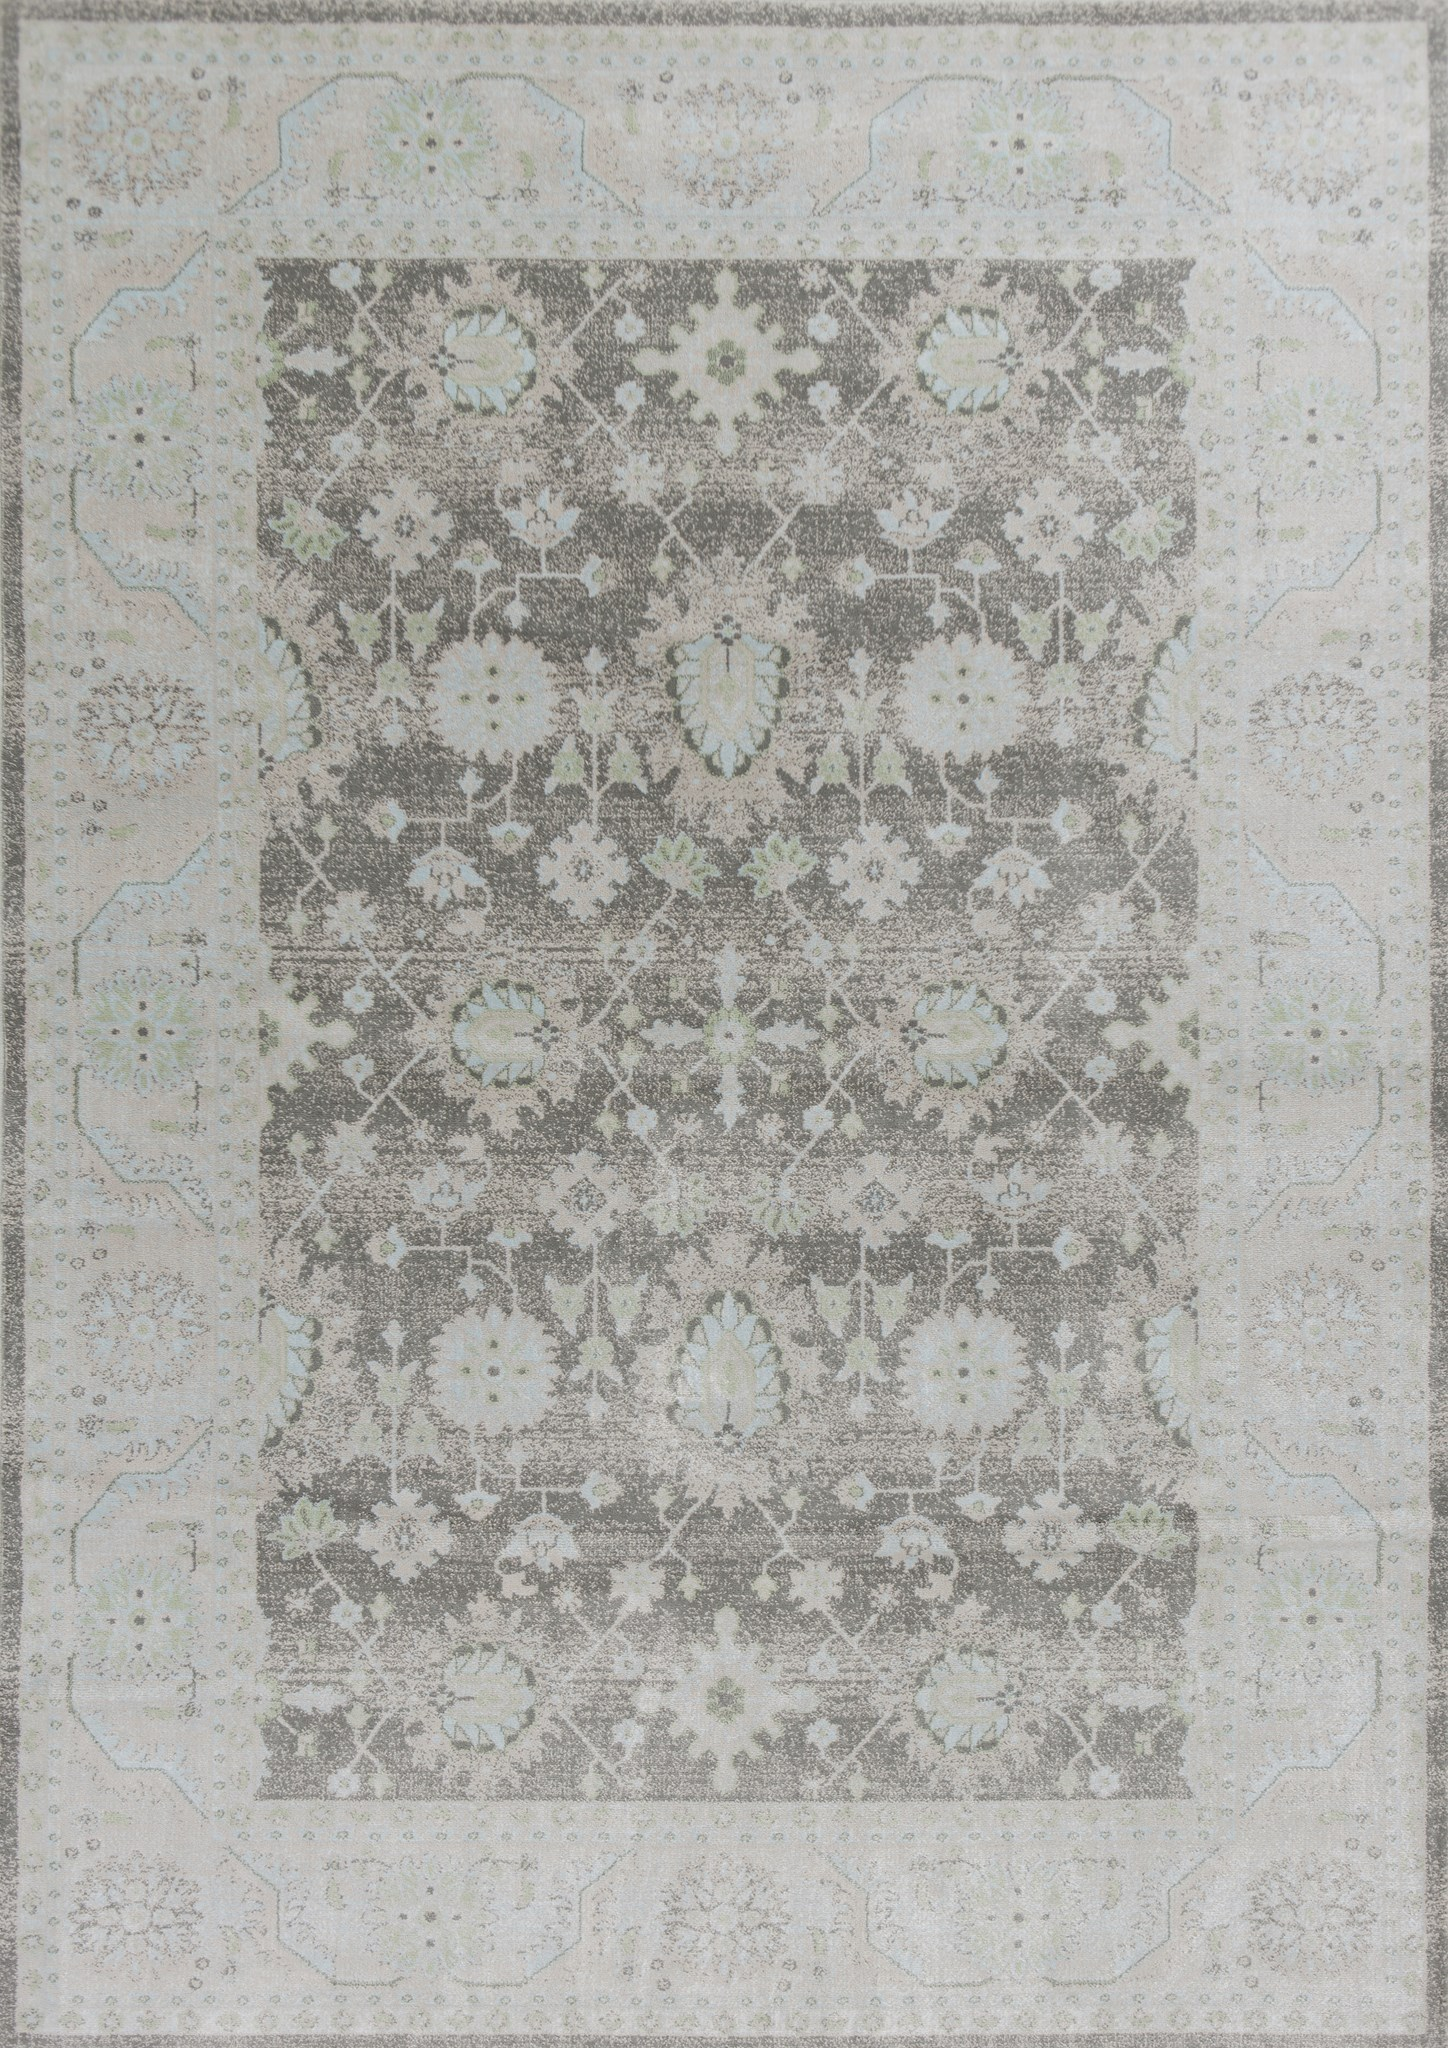 Chandler 4903 Charcoal Tabriz